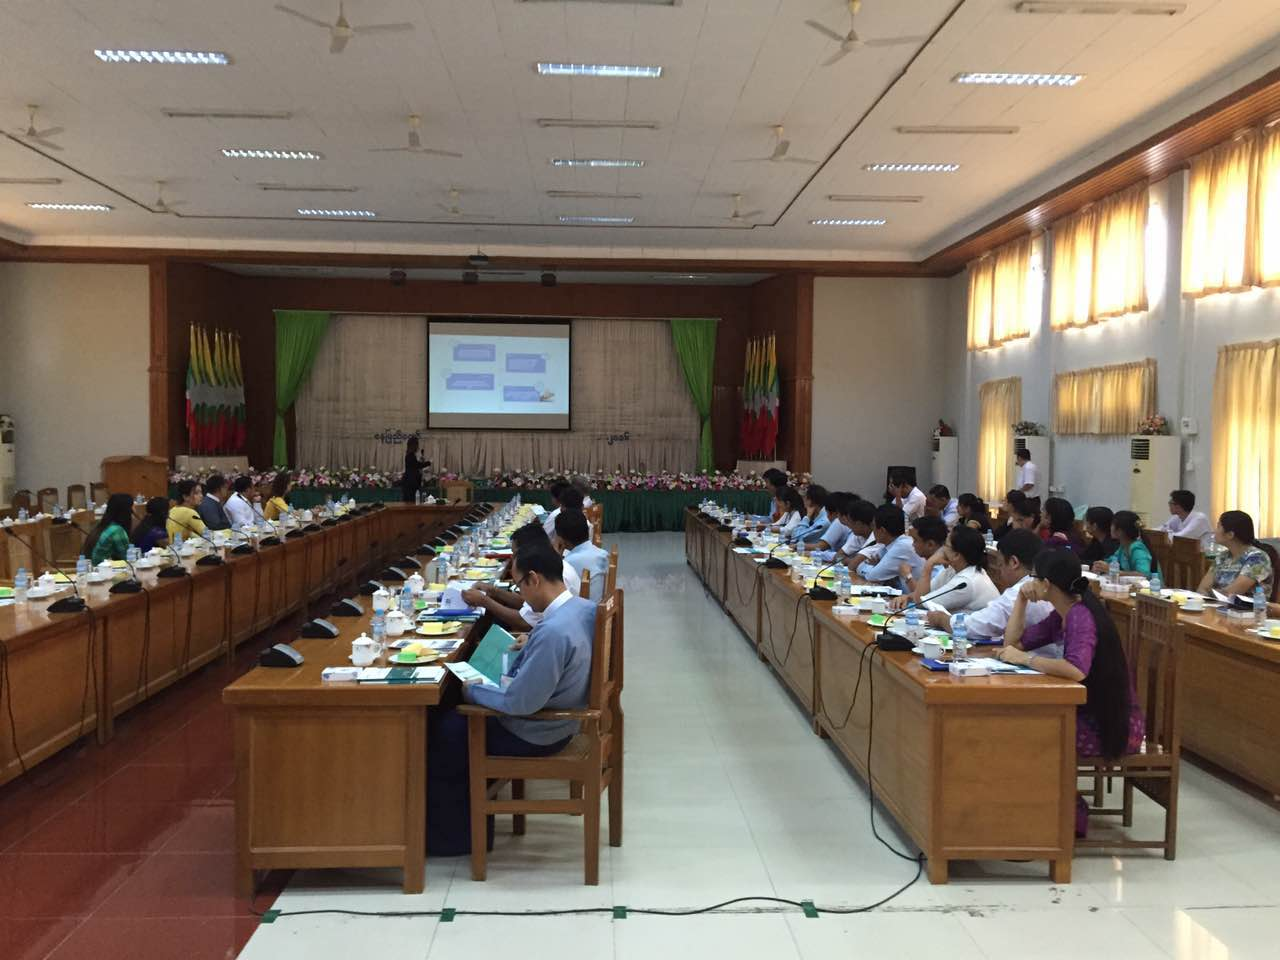 BONLE team make presentation at Myanmar Power